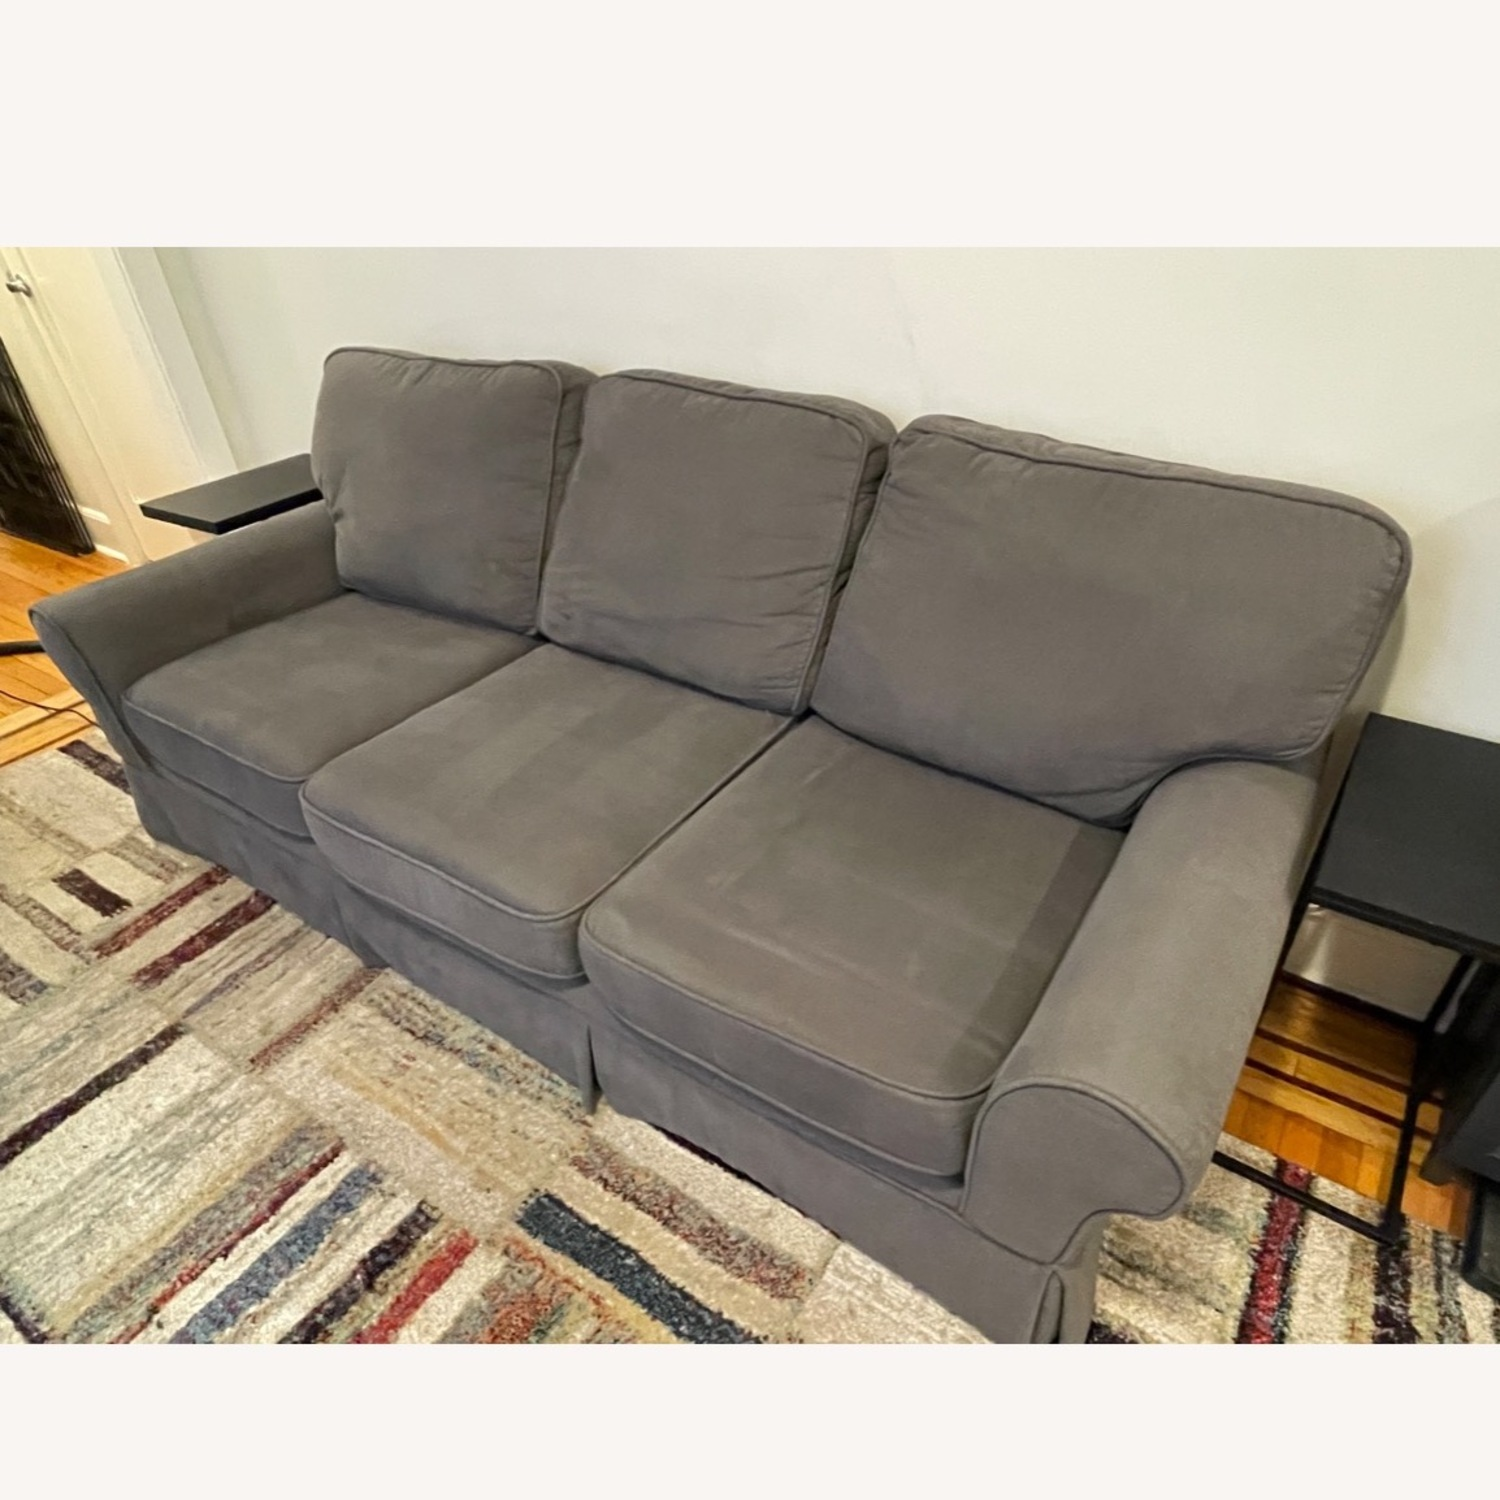 Bob's Discount Furniture 90 Couch with Queen Sleeper - image-2